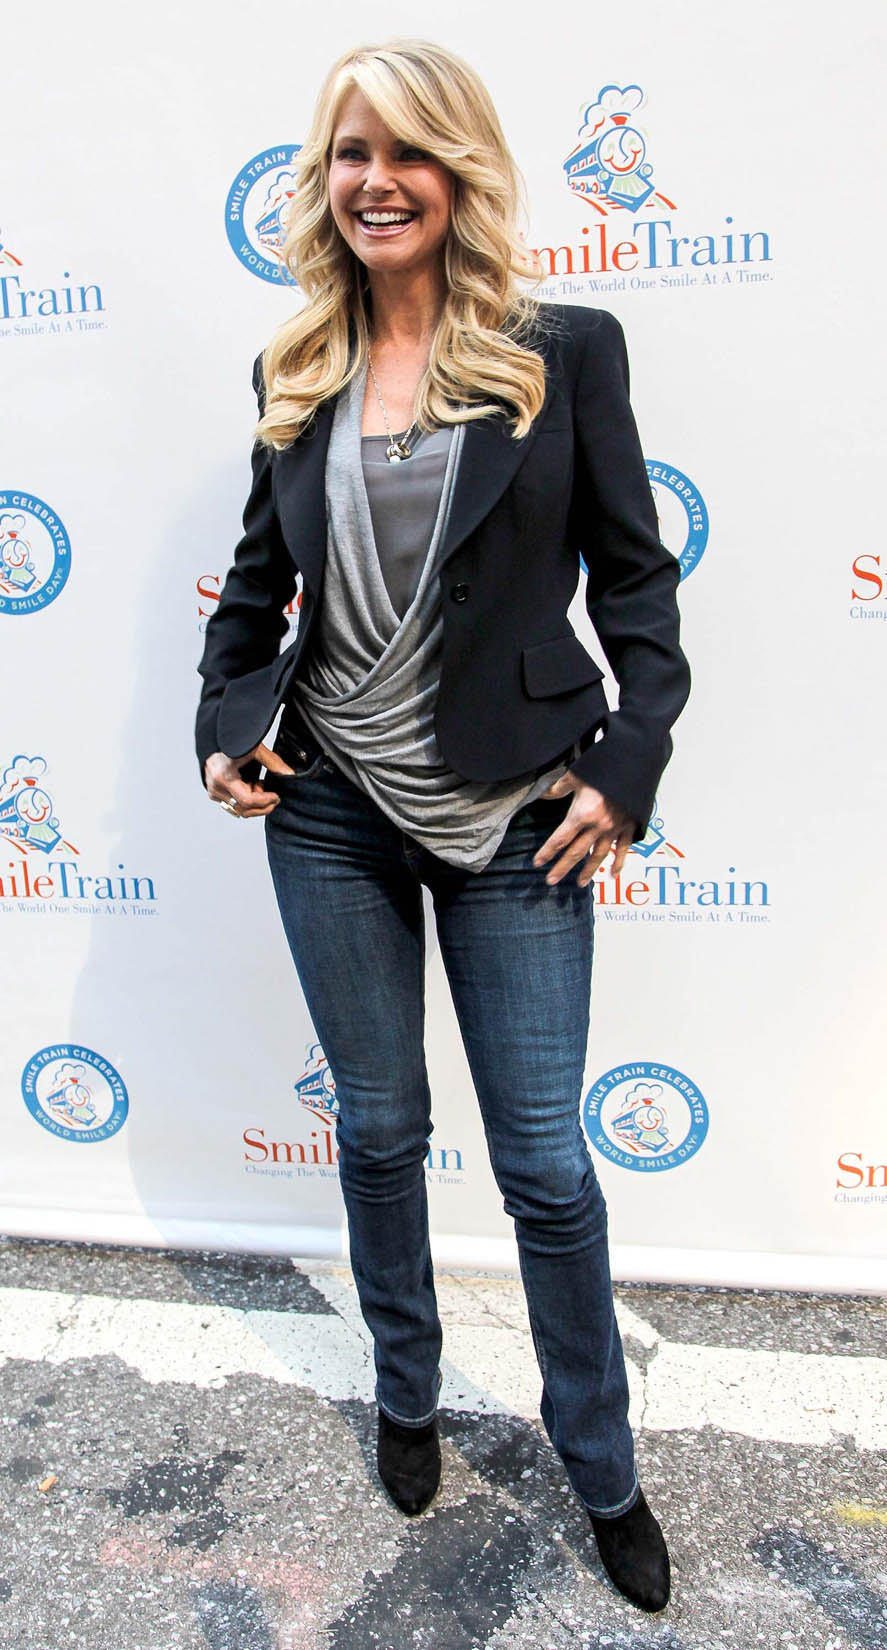 http://www.platinum-celebs.com/news_pic/7712/big_08October2012-christie_brinkley_hula_hoop_6.jpg